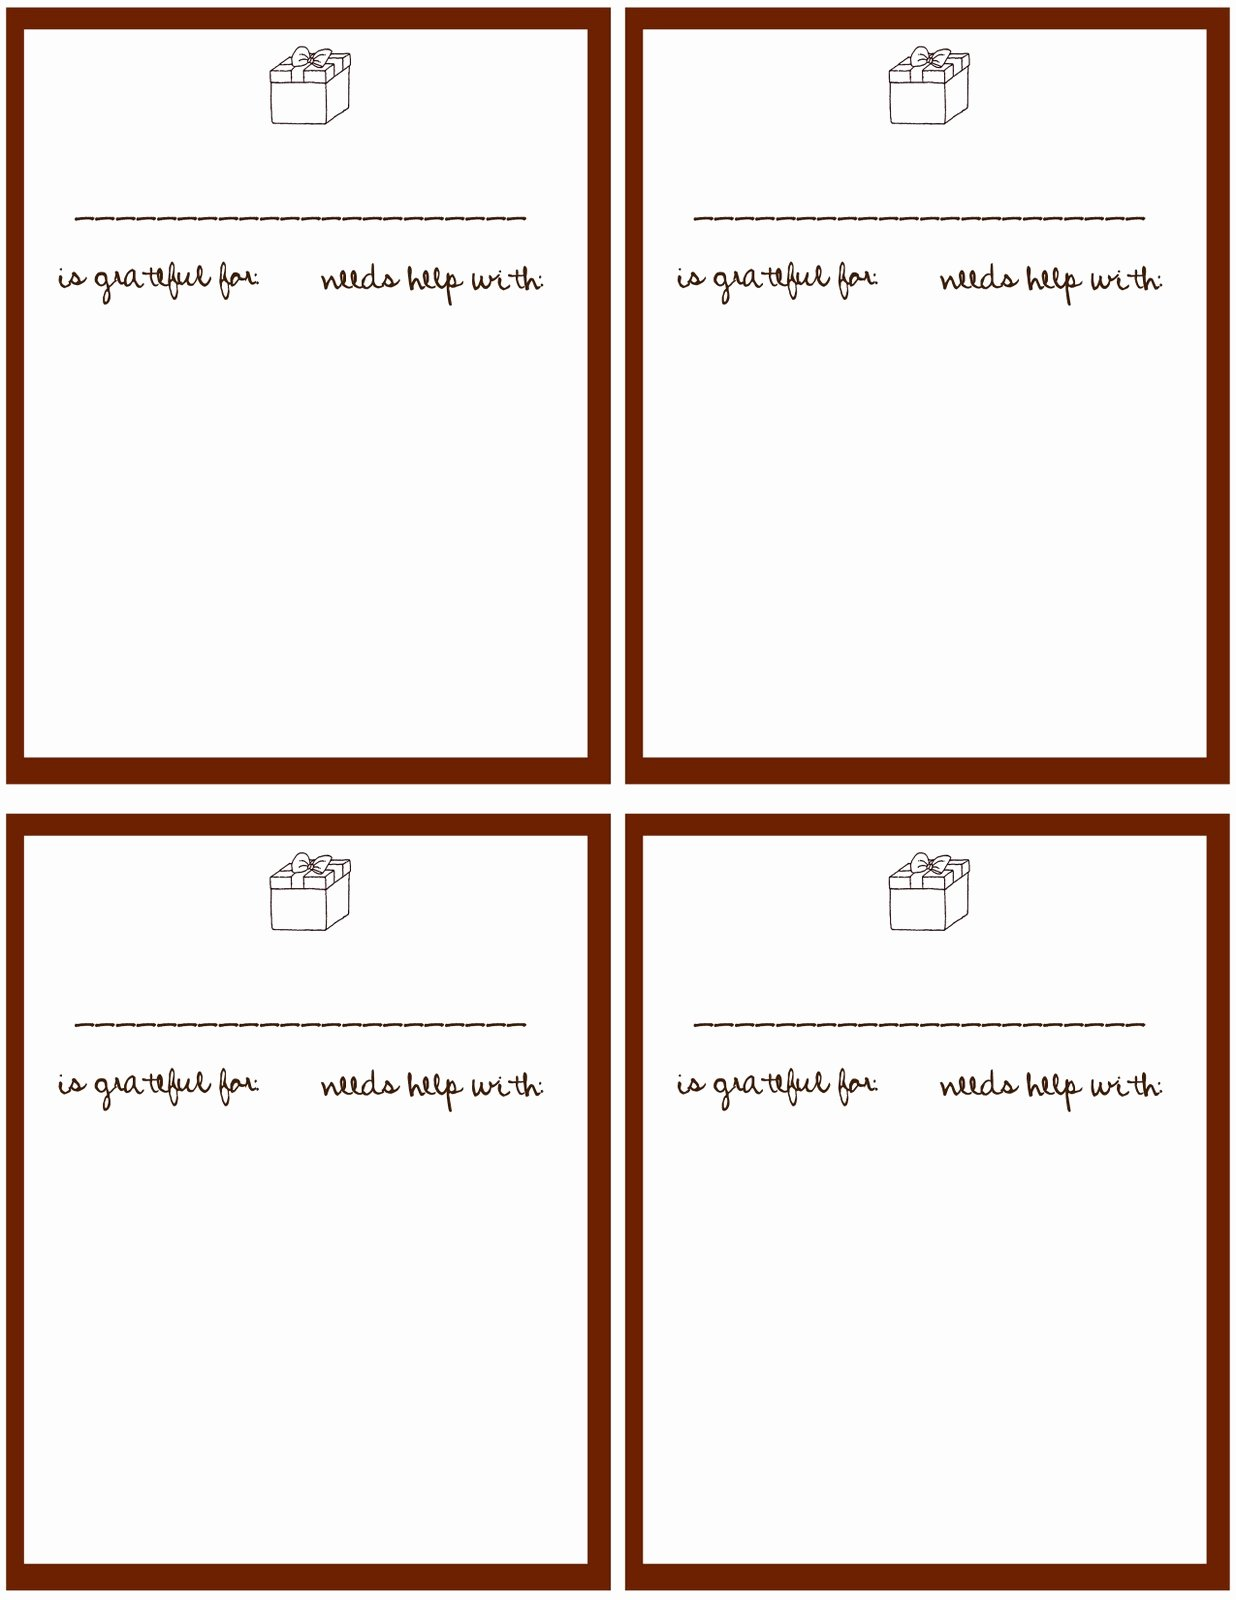 Missionary Prayer Card Template Free Best Of Amber S Notebook Daily Prayer Cards Printable